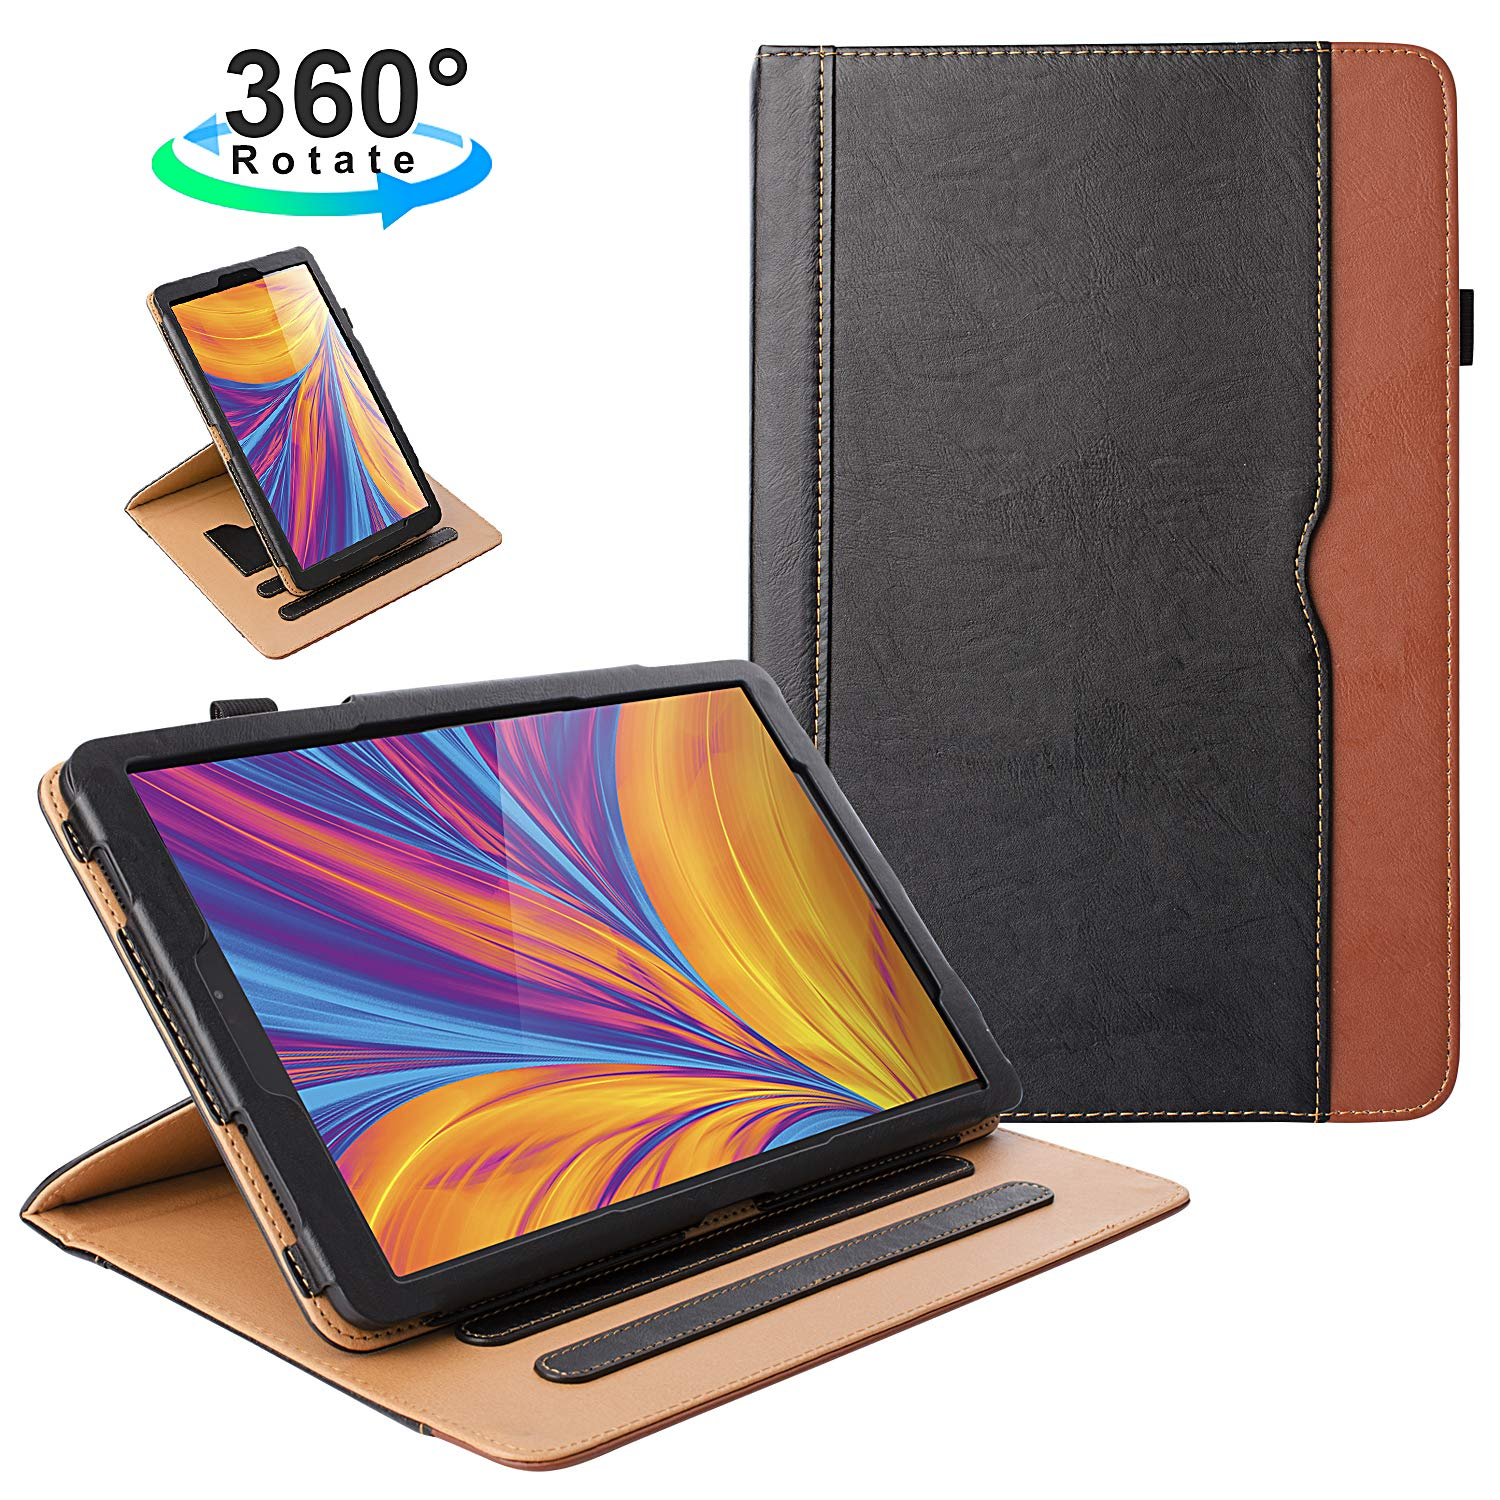 Zone Foker New Samsung Galaxy Tab A 10.1 Inch 2019 Tablet Leather Case, 360 Rotating Multi Angle Viewing Folio Stand Cases With Pencil Holder For Galaxy Tab A 10.1 Sm T510/Sm T515   Black/Brown by Zone Foker